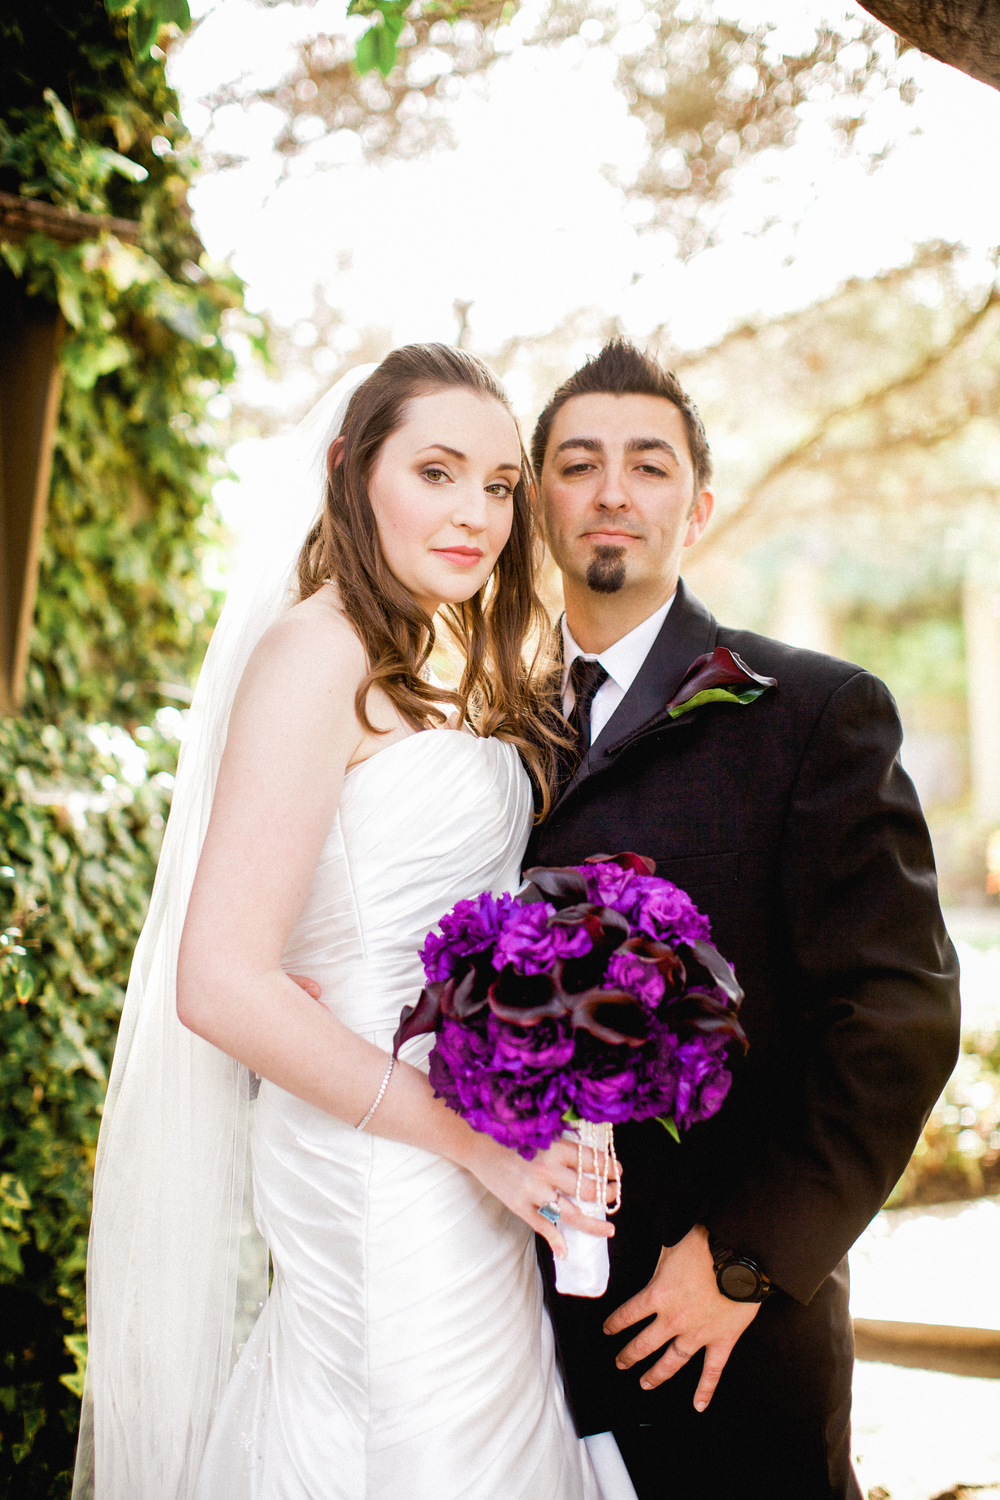 Jaime + Mario - The Pierpont Inn, Ventura